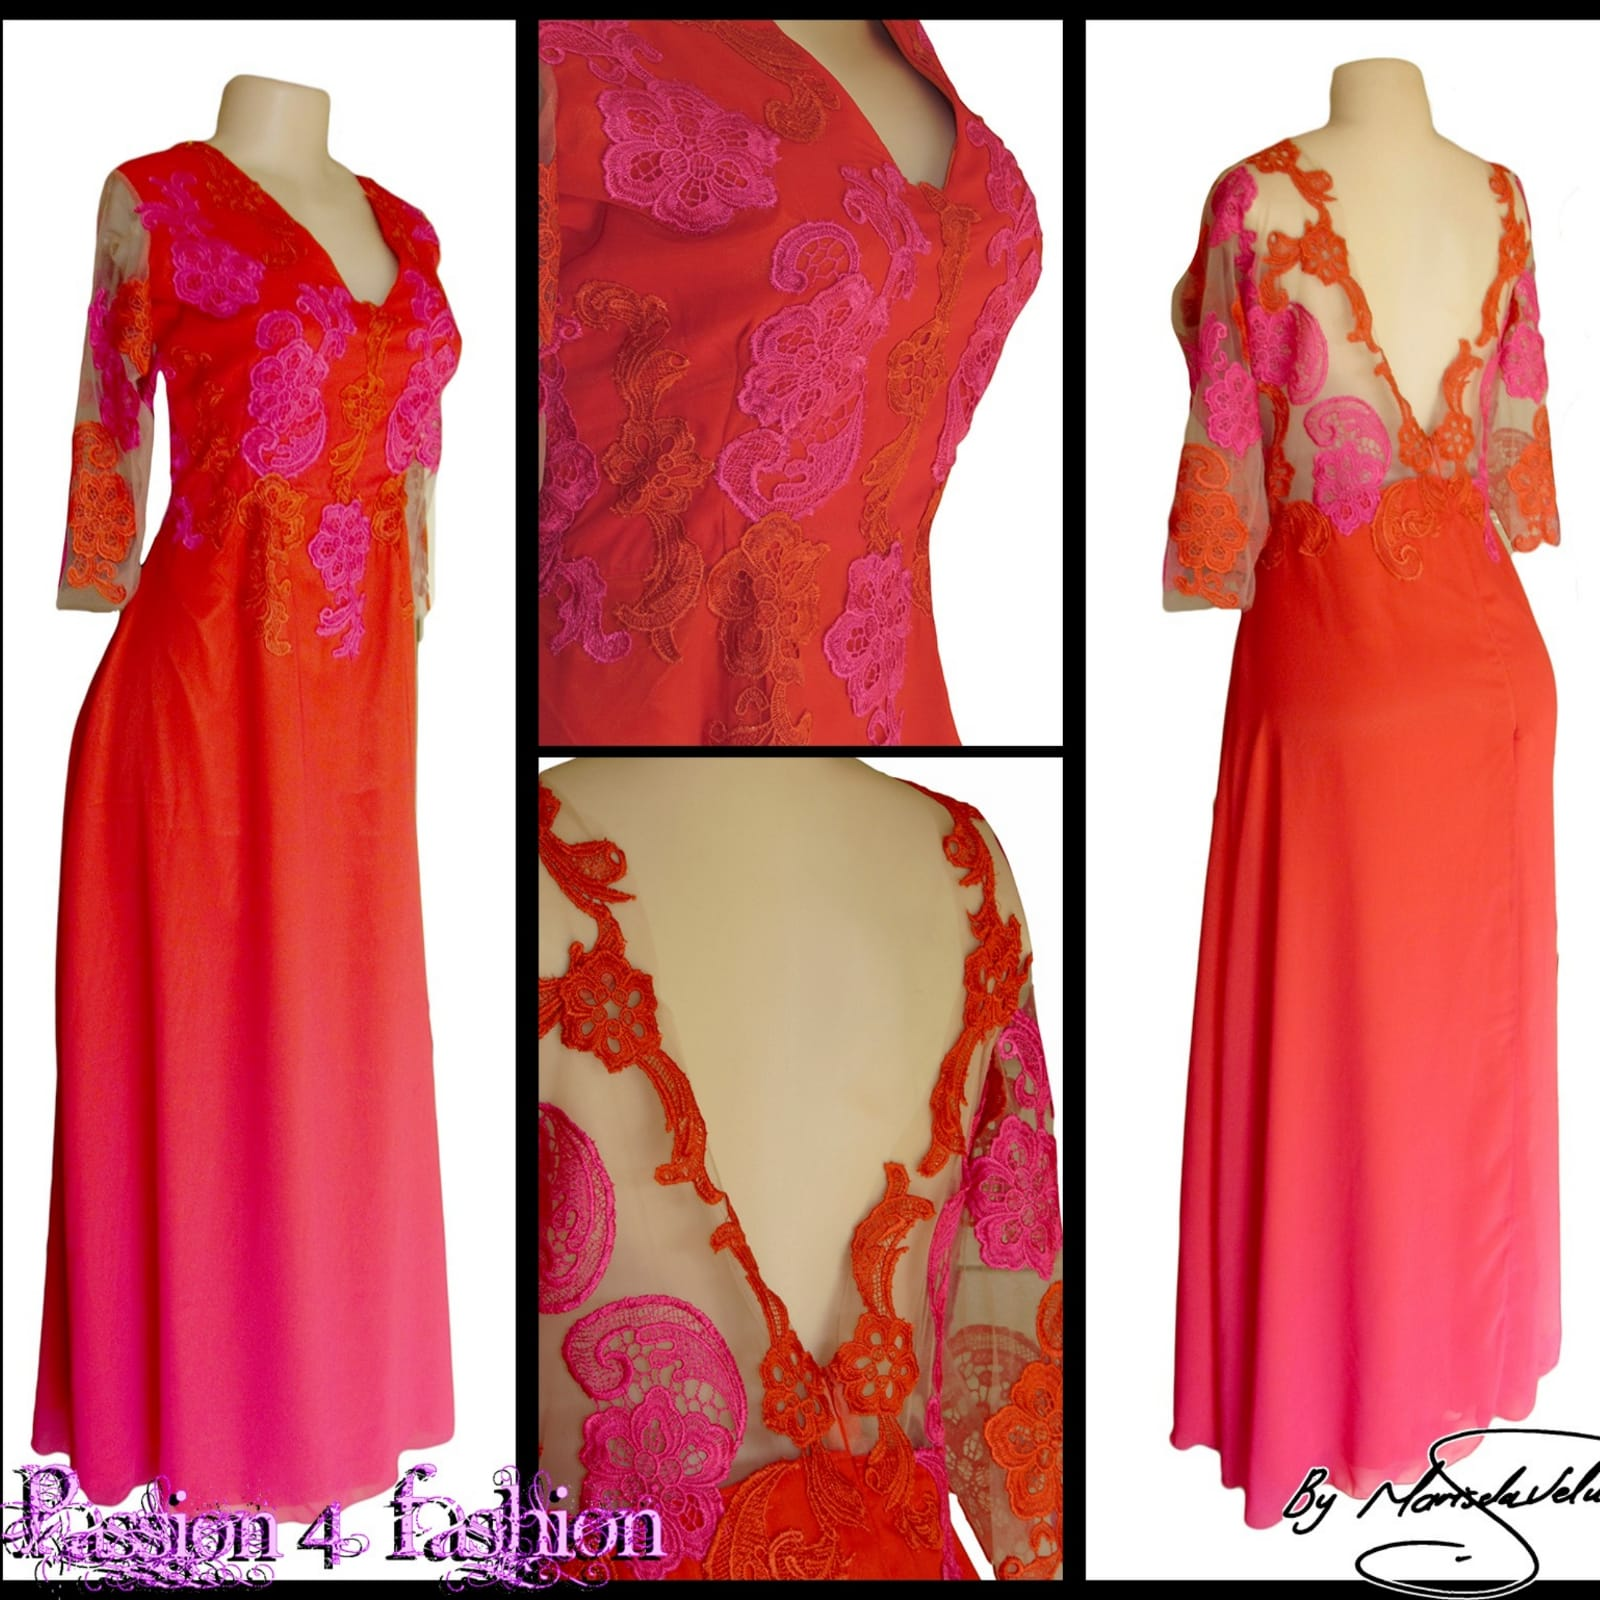 Orange & pink chiffon lace evening dress 6 orange & pink ombre long chiffon lace evening dress with a v illusion open back, 3/4 illusion lace sleeves.